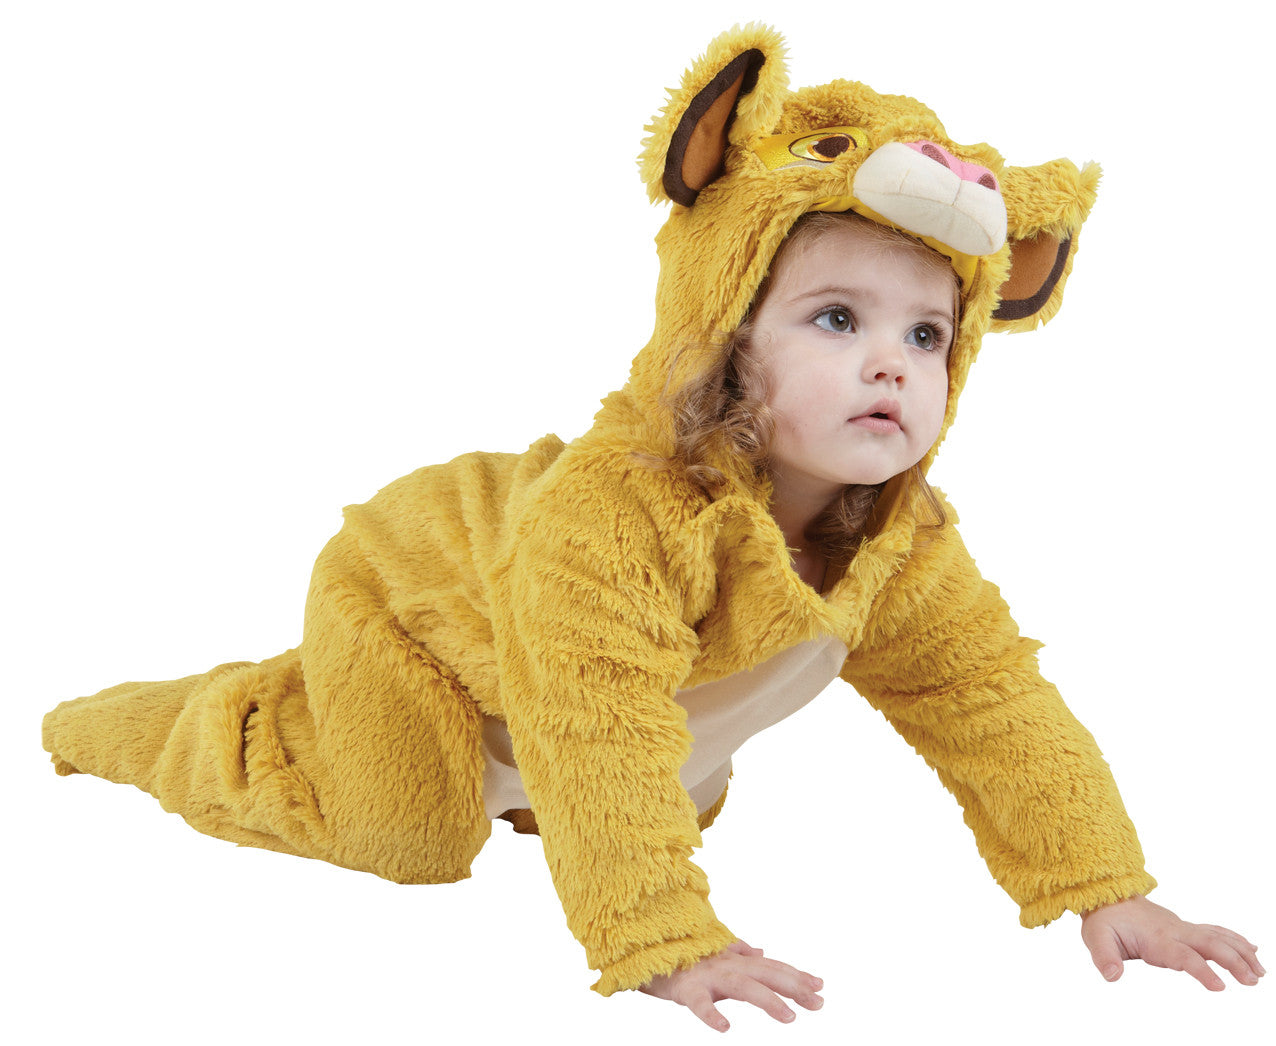 SIMBA FURRY COSTUME - SIZE TODDLER